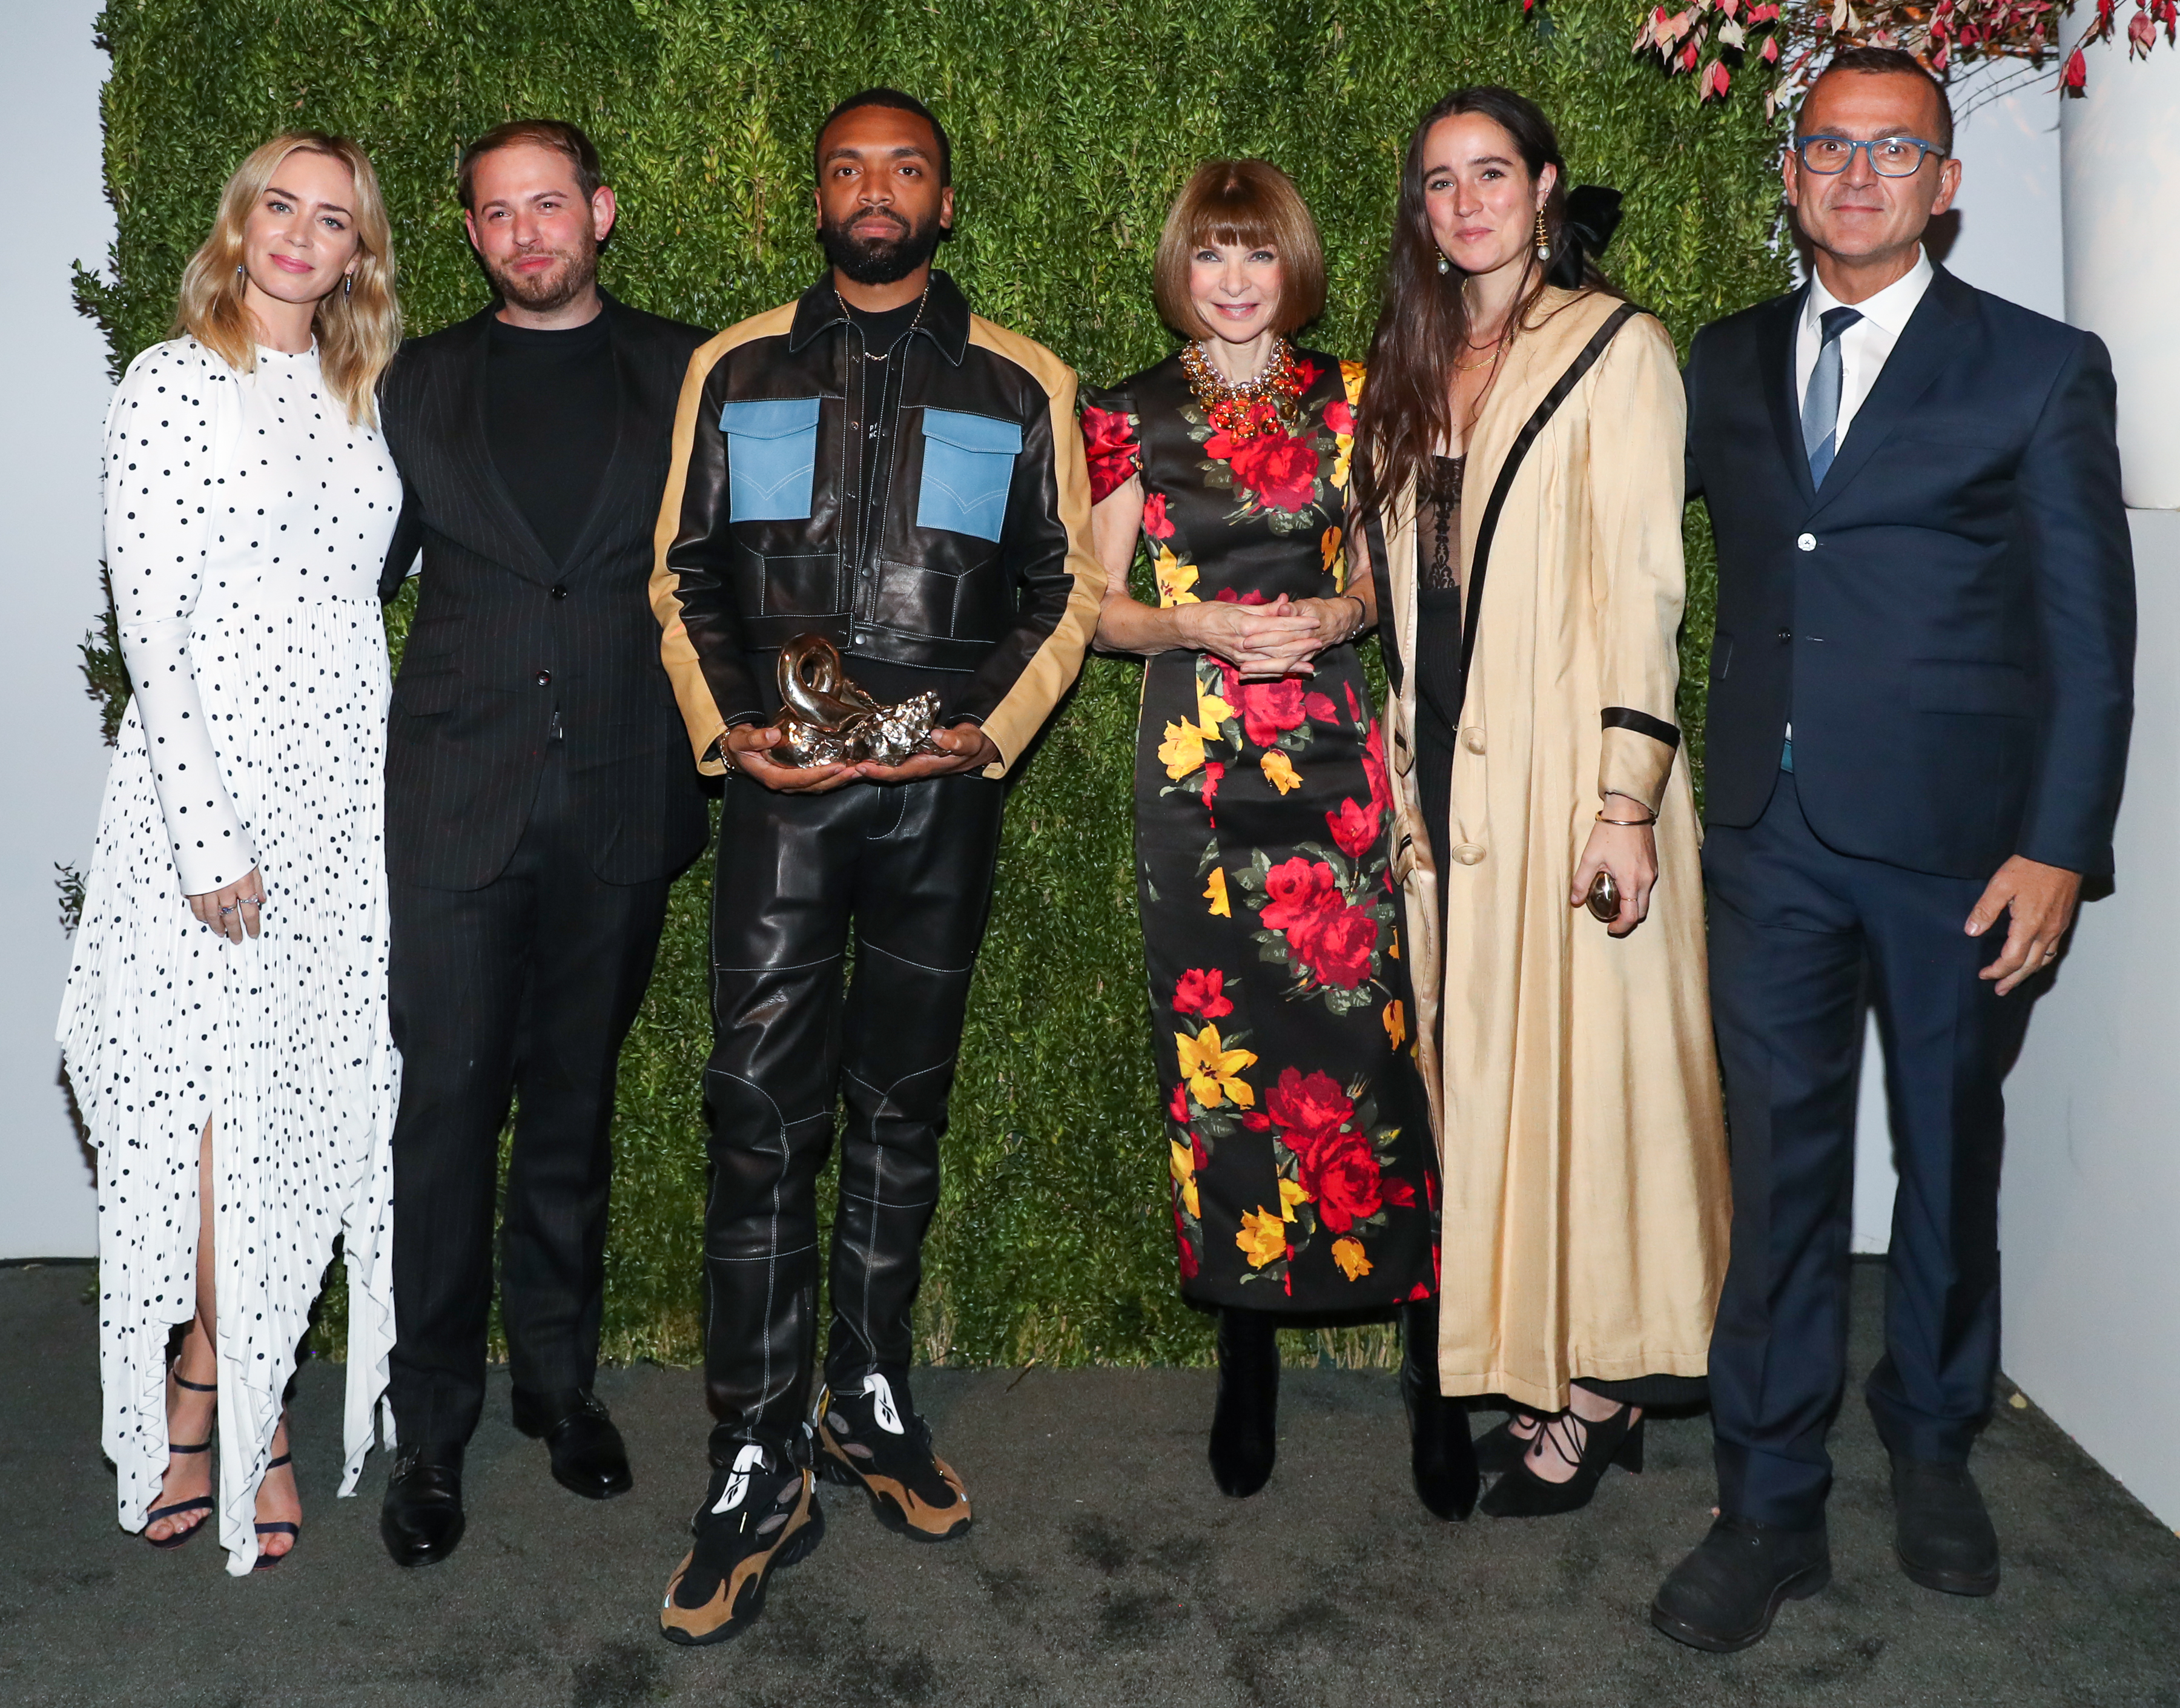 Fashion Finally Crowns A New Prince Who S Determined To Make The Industry More Relevant The Washington Post